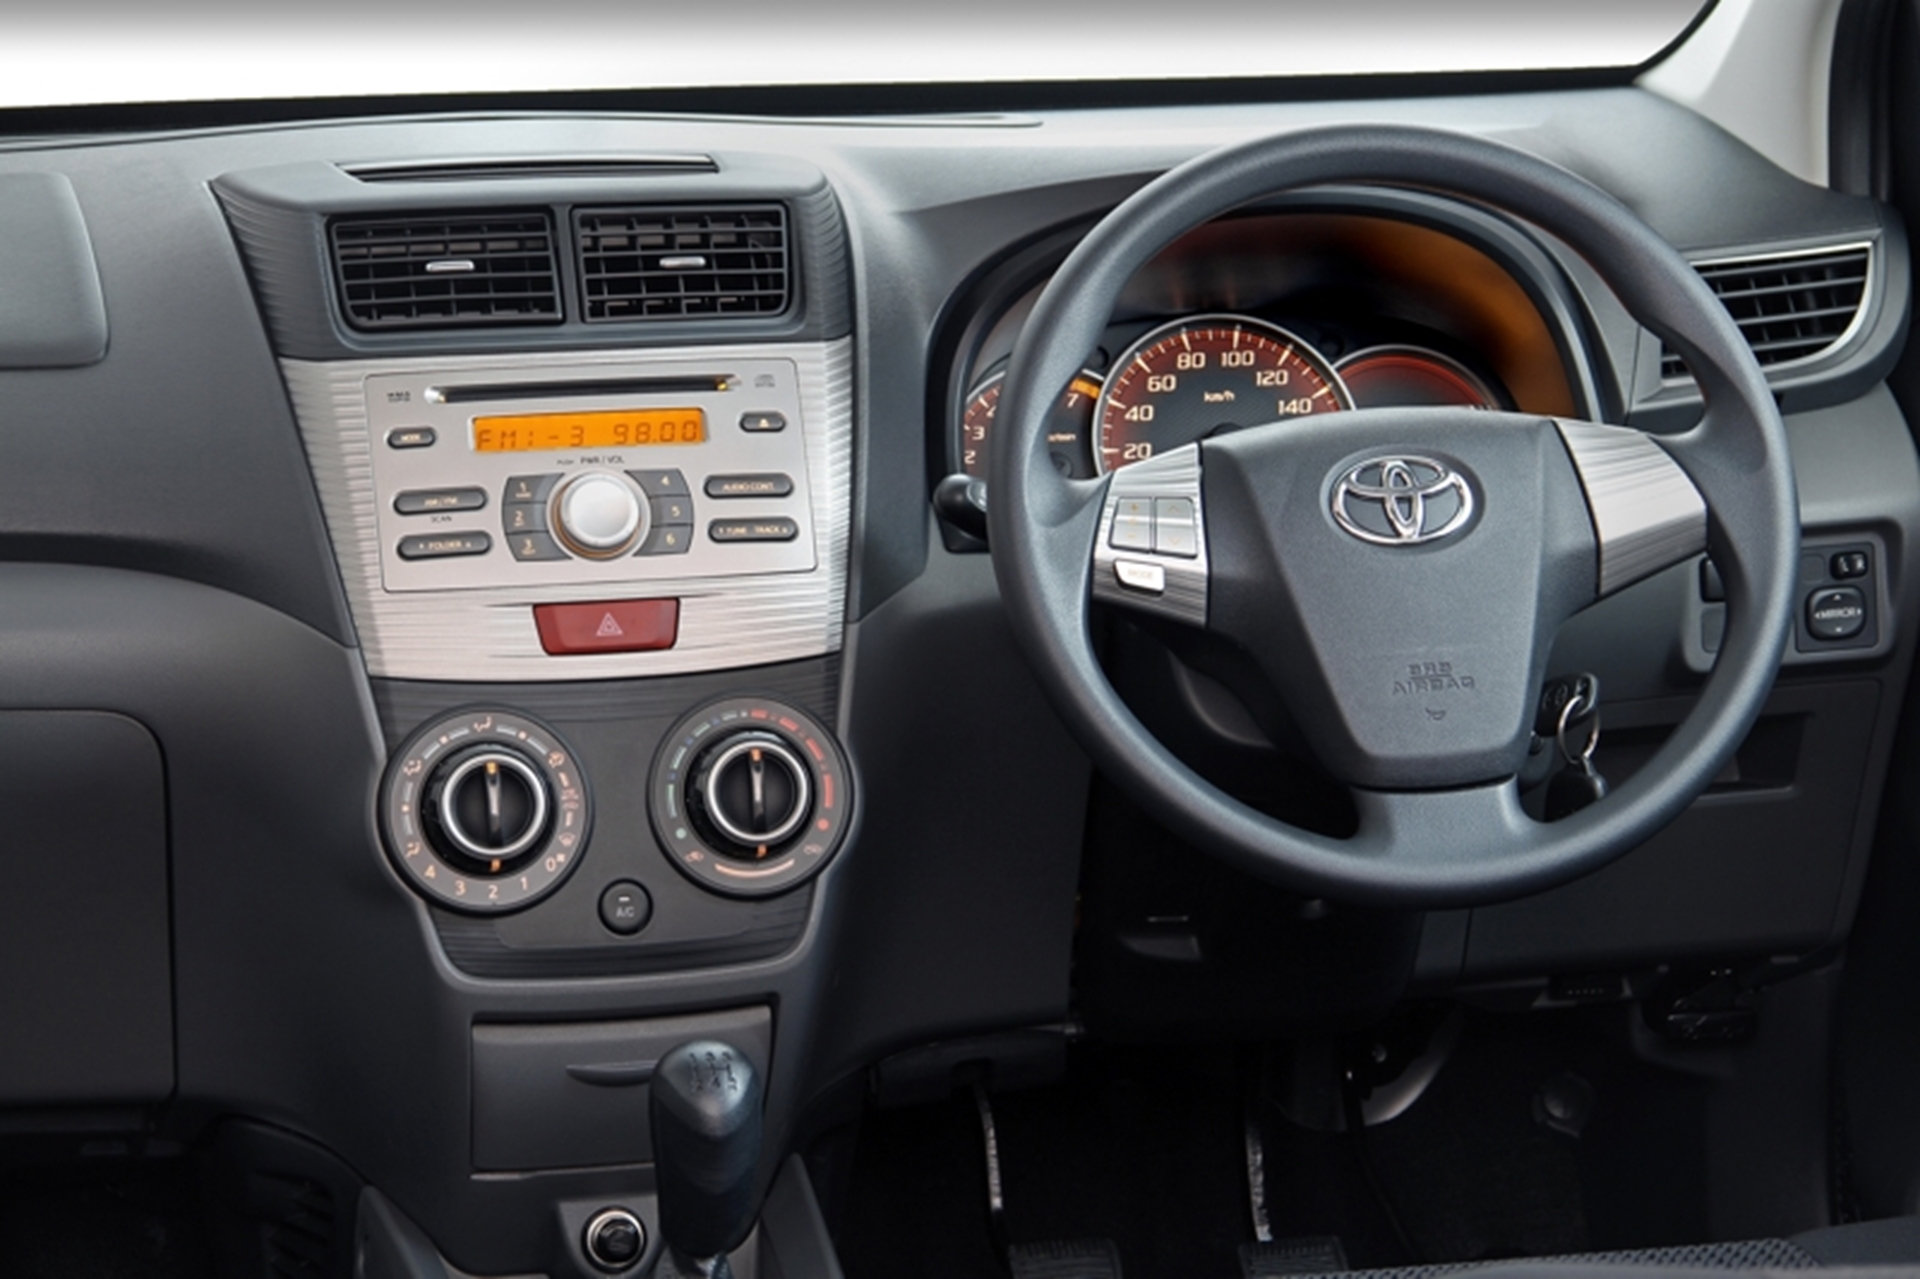 Toyota Avanza Fits Any Family